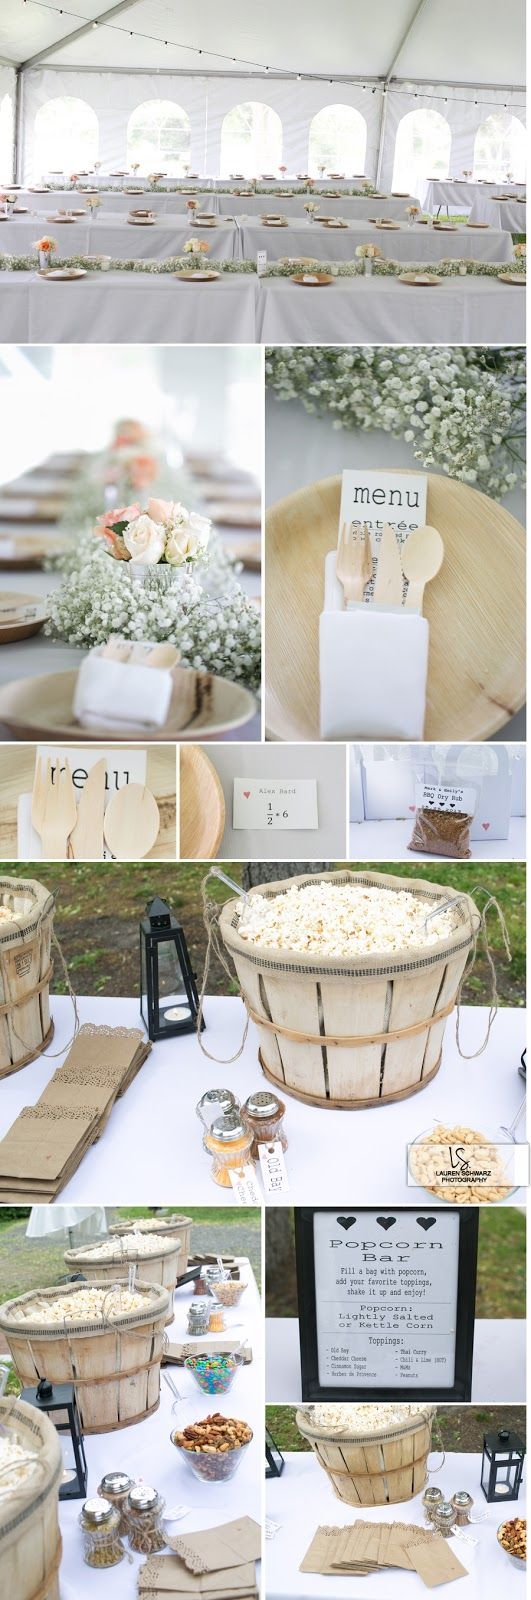 BBQ wedding complete with popcorn bar and wooden utensils and plates ...